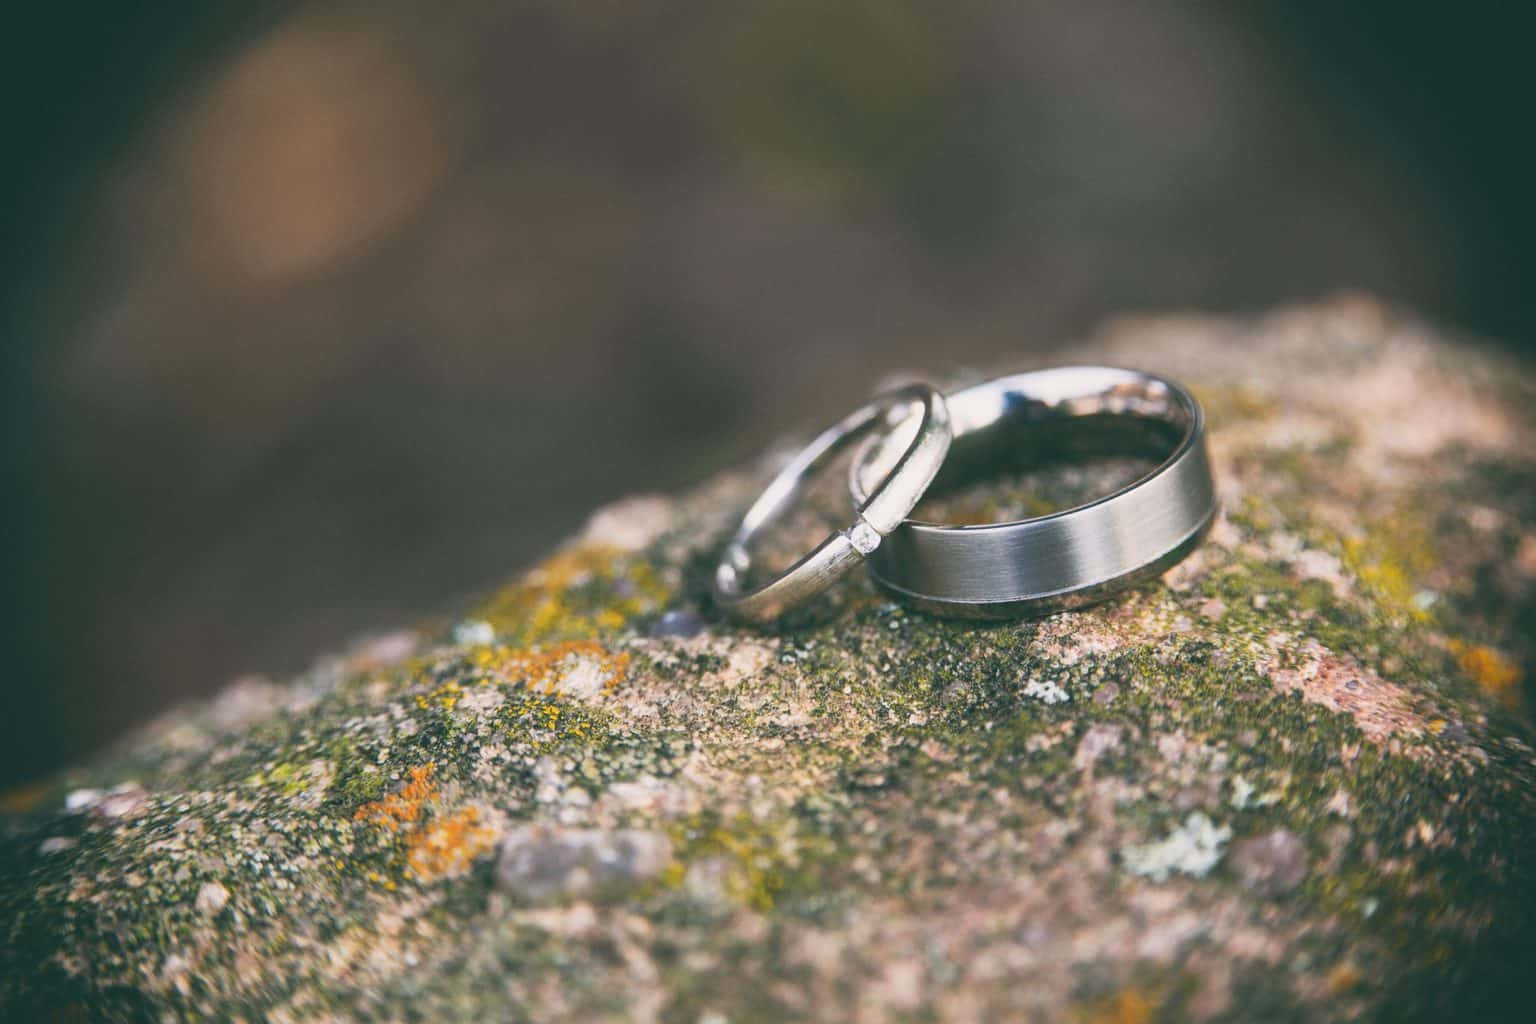 Some crucial ways to take care of your wedding band